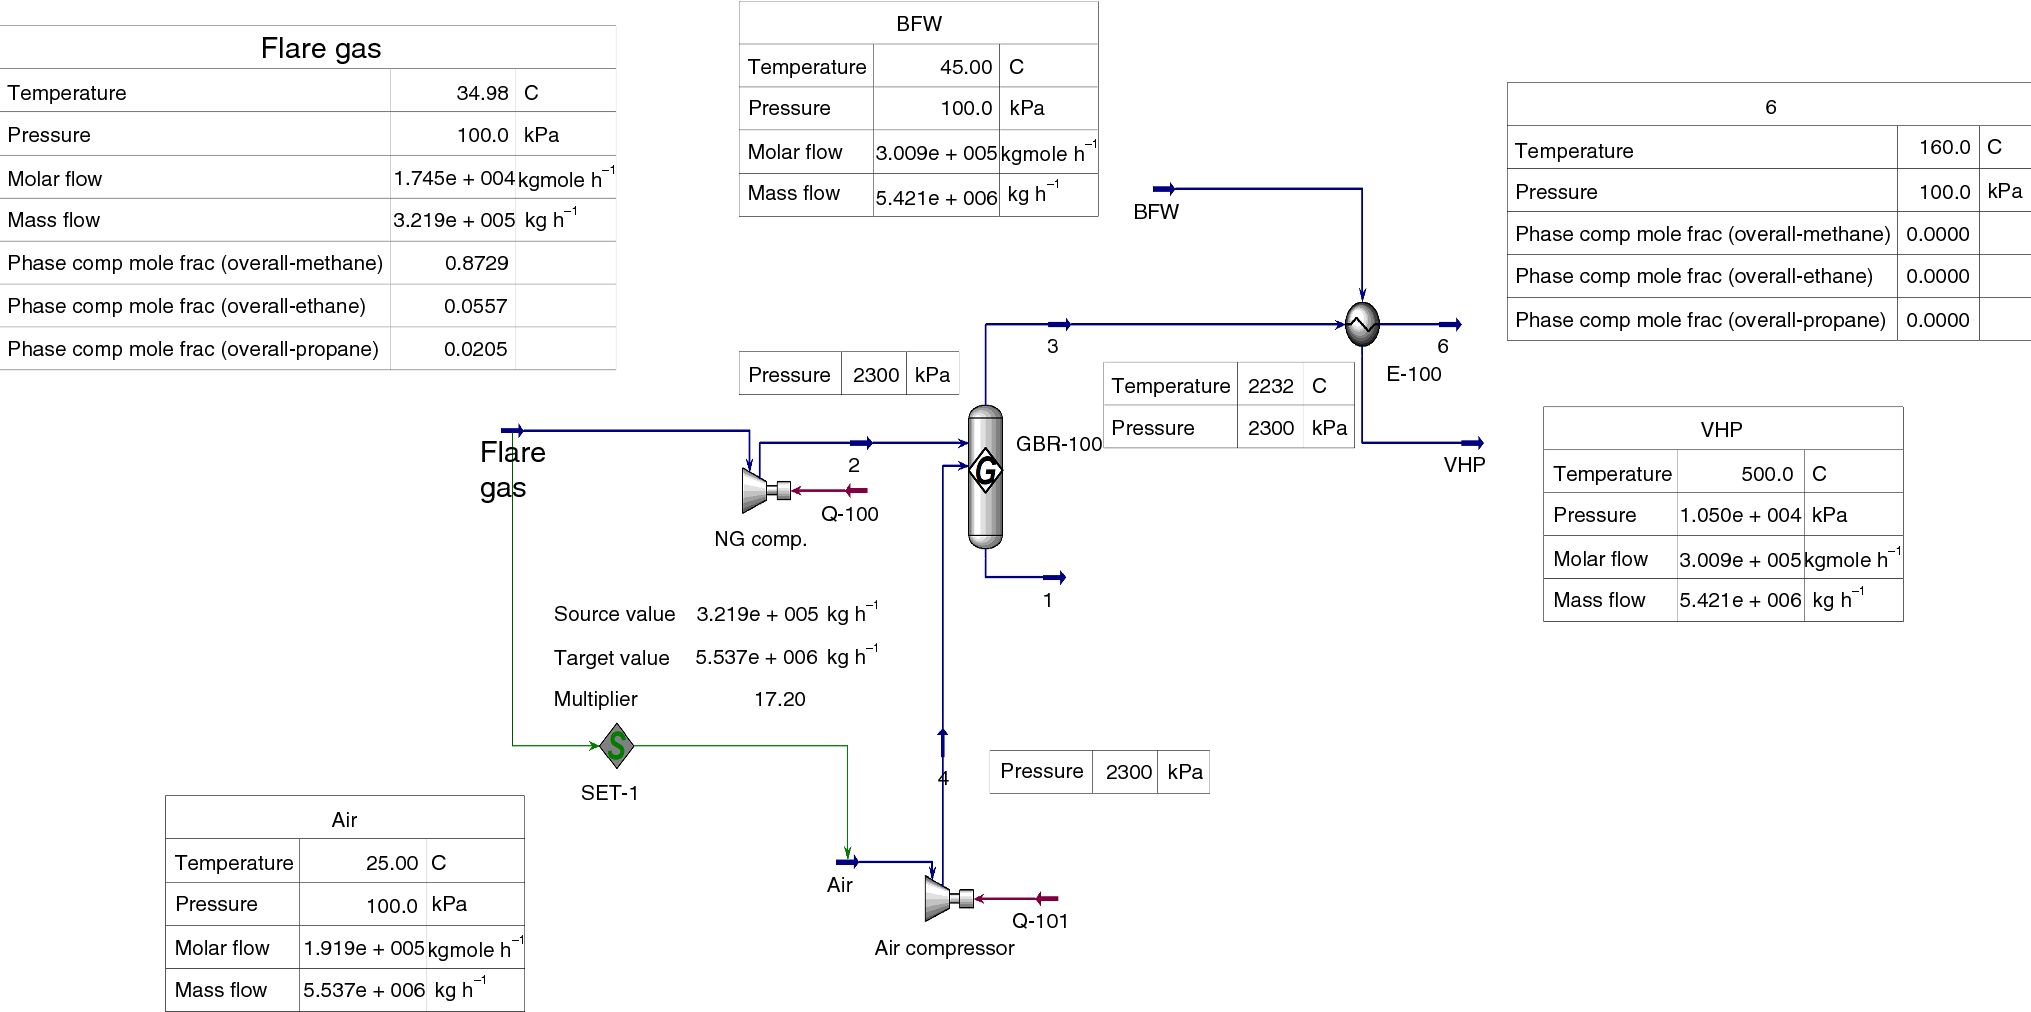 Technological and economical analysis of flare recovery